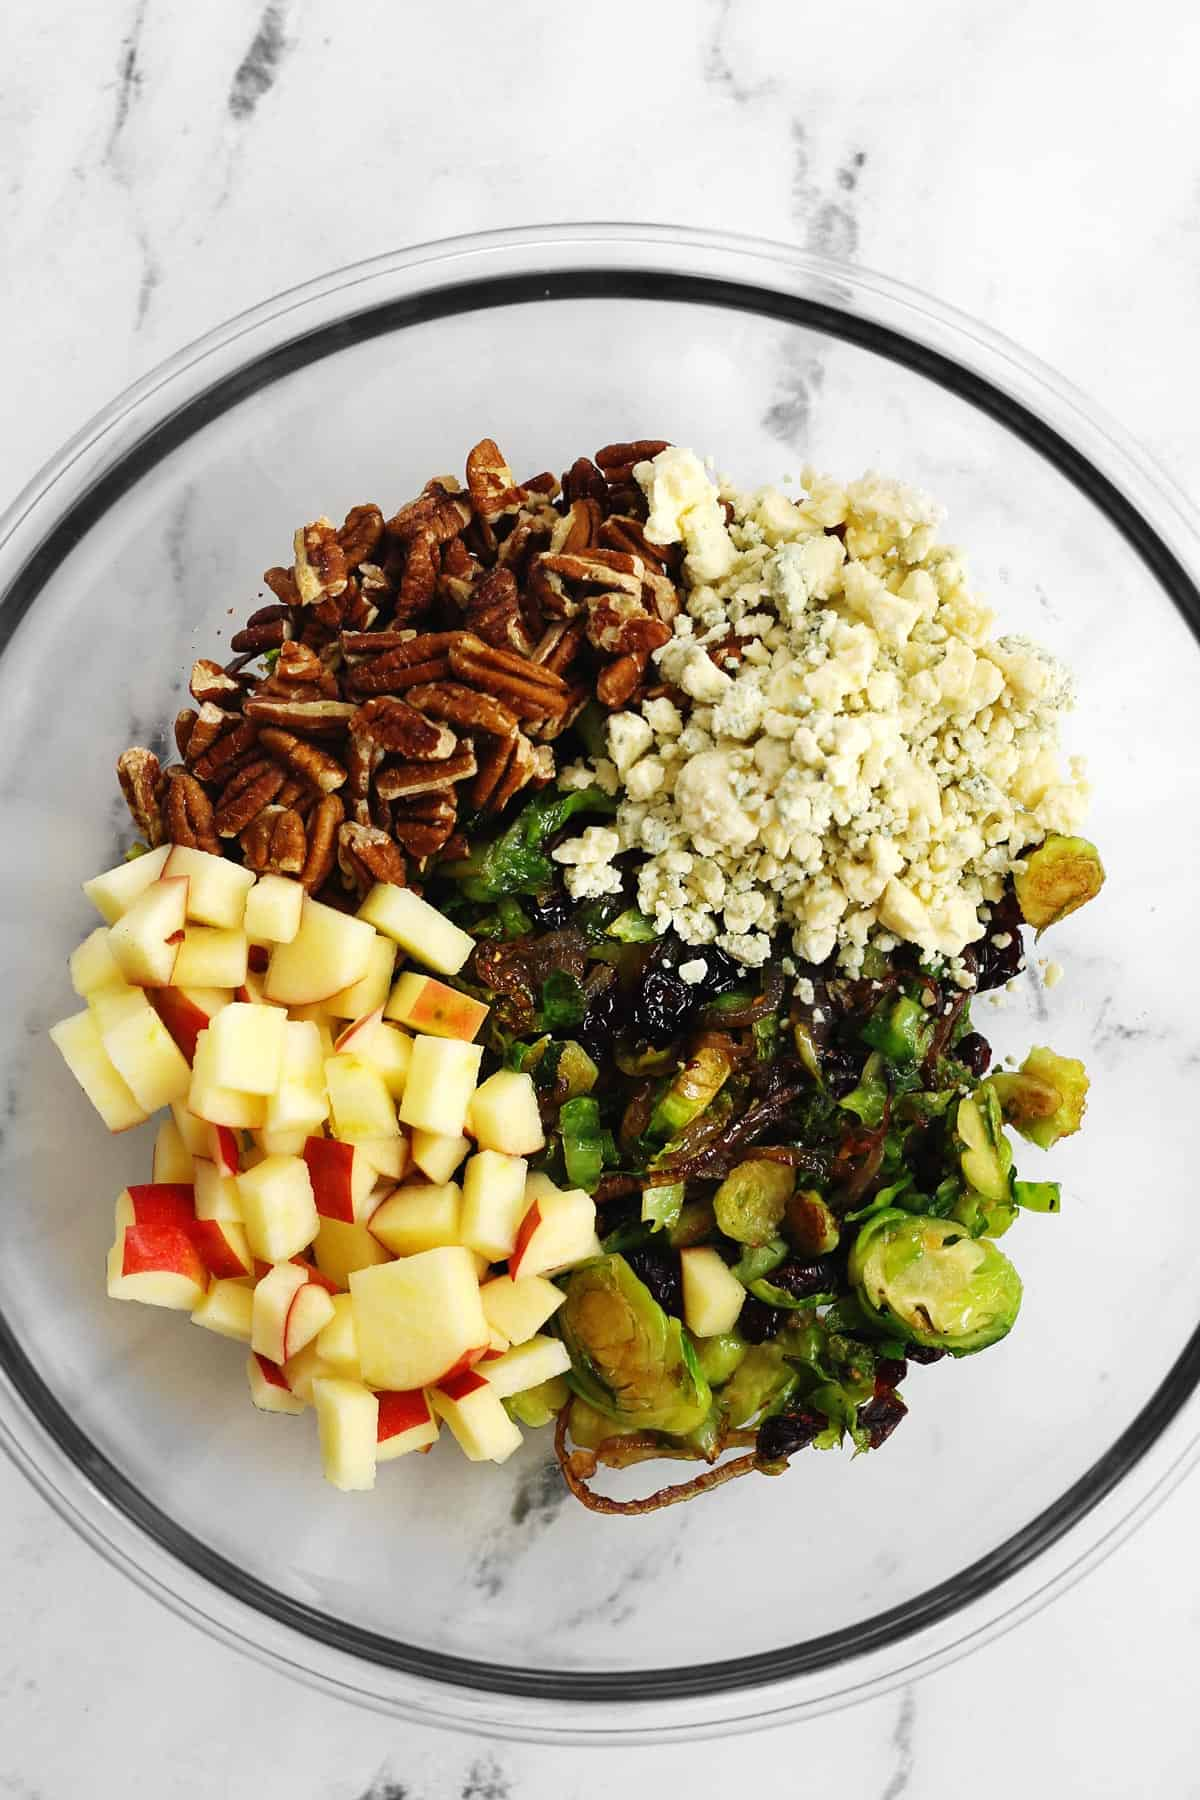 Brussels sprout and apple salad in a glass bowl